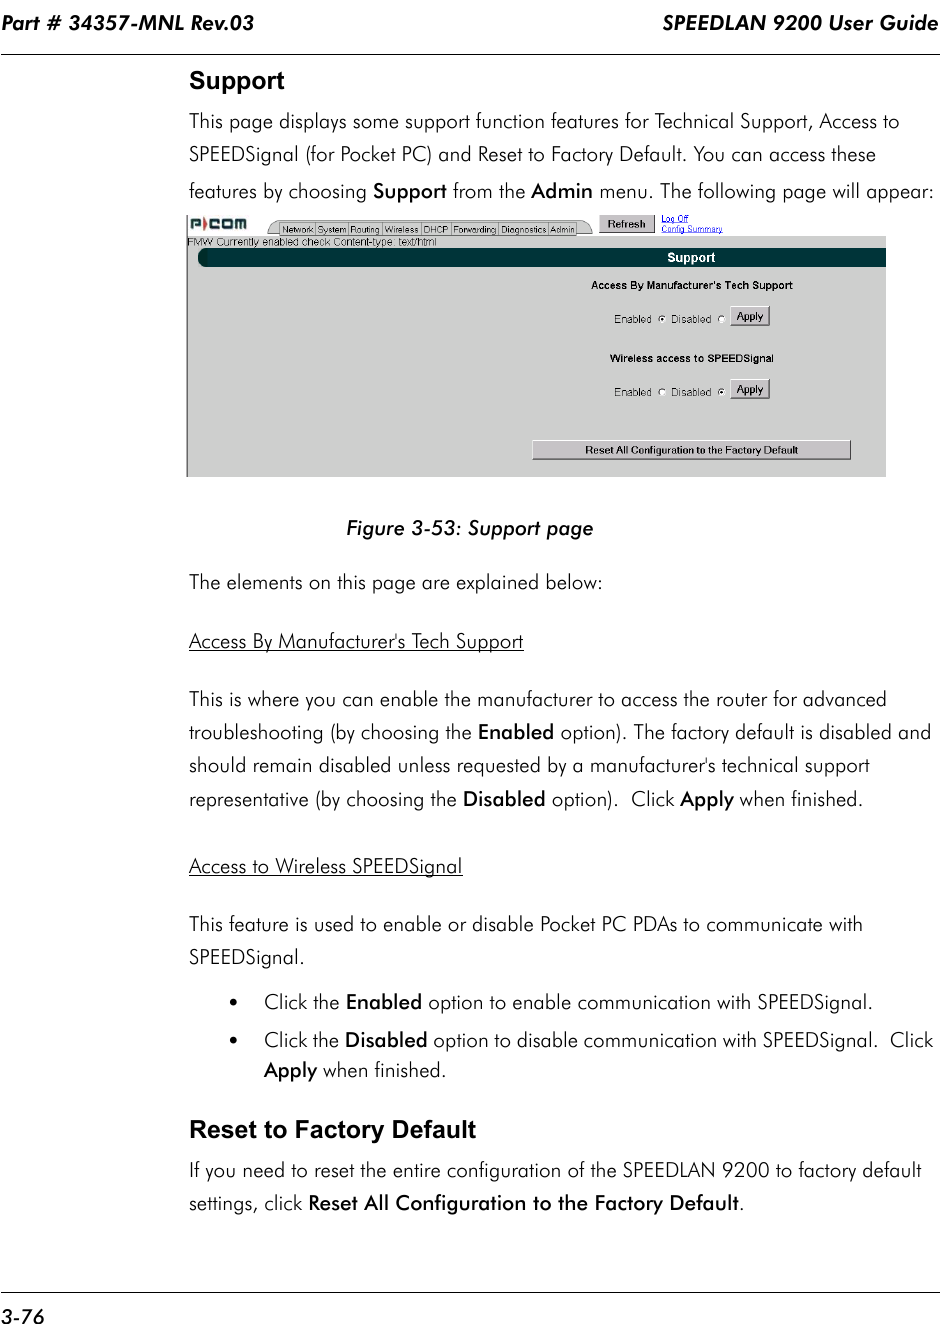 Part # 34357-MNL Rev.03                                                                   SPEEDLAN 9200 User Guide 3-76Support This page displays some support function features for Technical Support, Access to SPEEDSignal (for Pocket PC) and Reset to Factory Default. You can access these features by choosing Support from the Admin menu. The following page will appear:Figure 3-53: Support pageThe elements on this page are explained below:Access By Manufacturer's Tech SupportThis is where you can enable the manufacturer to access the router for advanced troubleshooting (by choosing the Enabled option). The factory default is disabled and should remain disabled unless requested by a manufacturer's technical support representative (by choosing the Disabled option).  Click Apply when finished.Access to Wireless SPEEDSignal This feature is used to enable or disable Pocket PC PDAs to communicate with SPEEDSignal. •Click the Enabled option to enable communication with SPEEDSignal.•Click the Disabled option to disable communication with SPEEDSignal.  Click Apply when finished.Reset to Factory DefaultIf you need to reset the entire configuration of the SPEEDLAN 9200 to factory default settings, click Reset All Configuration to the Factory Default.